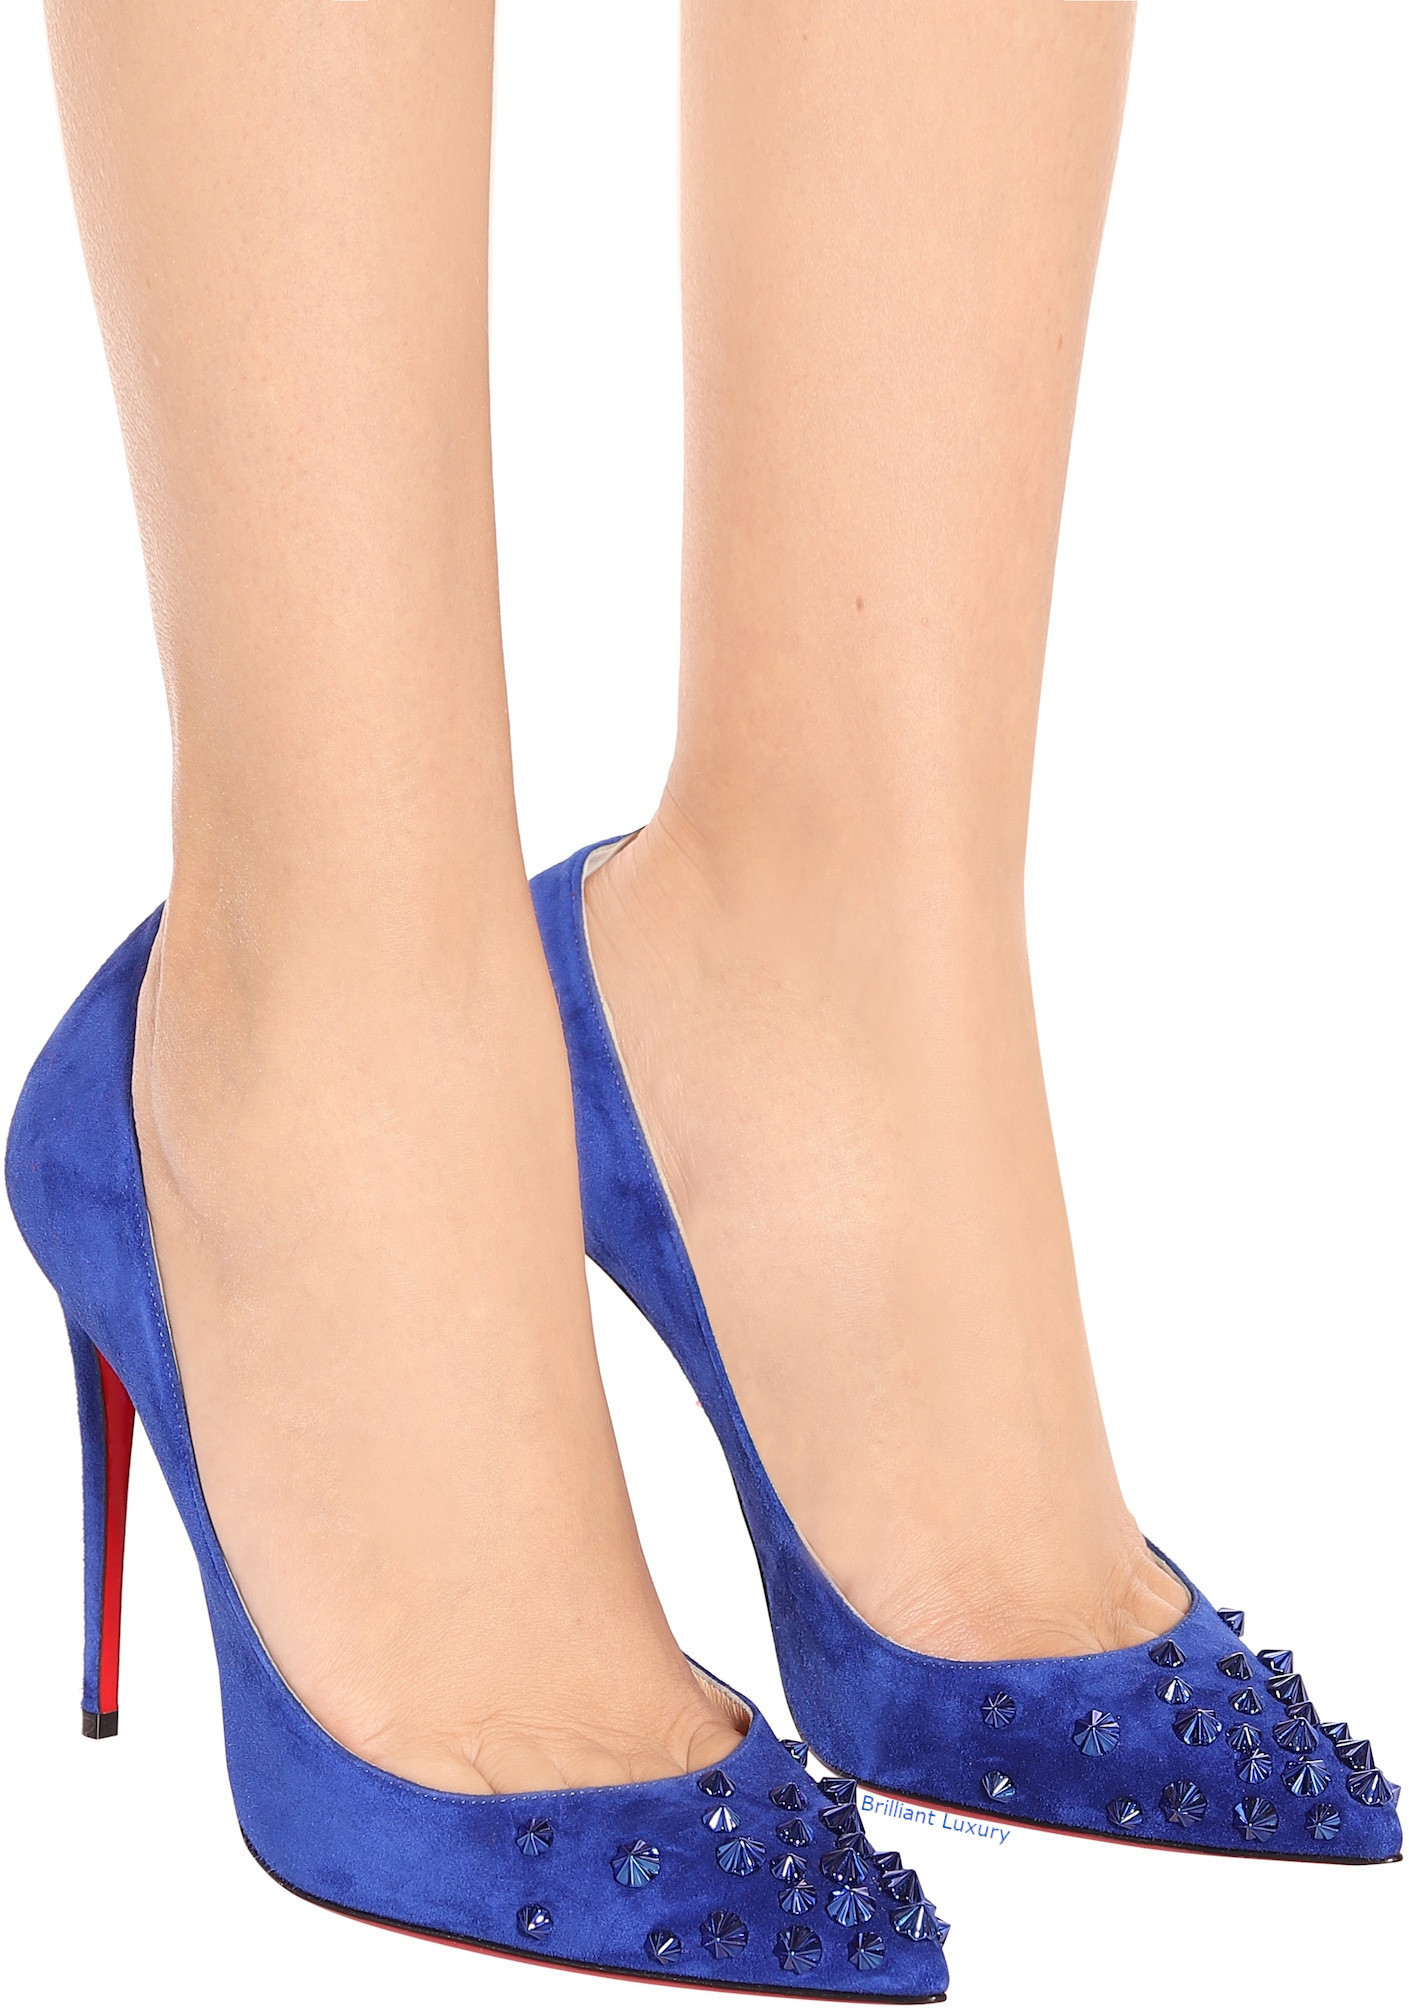 Christian Louboutin Drama suede pumps in blue